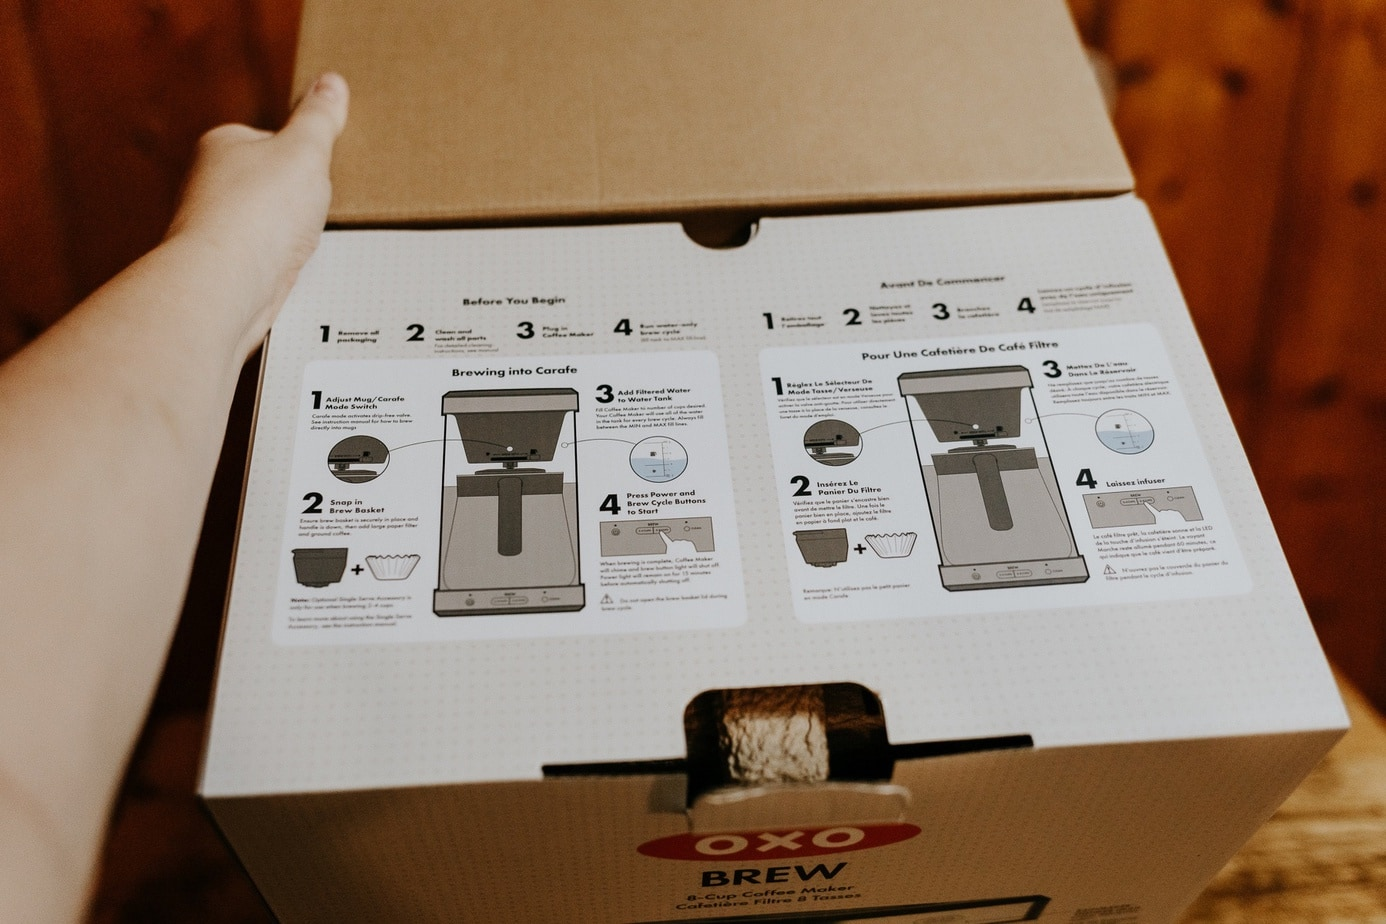 oxo 8-cup review